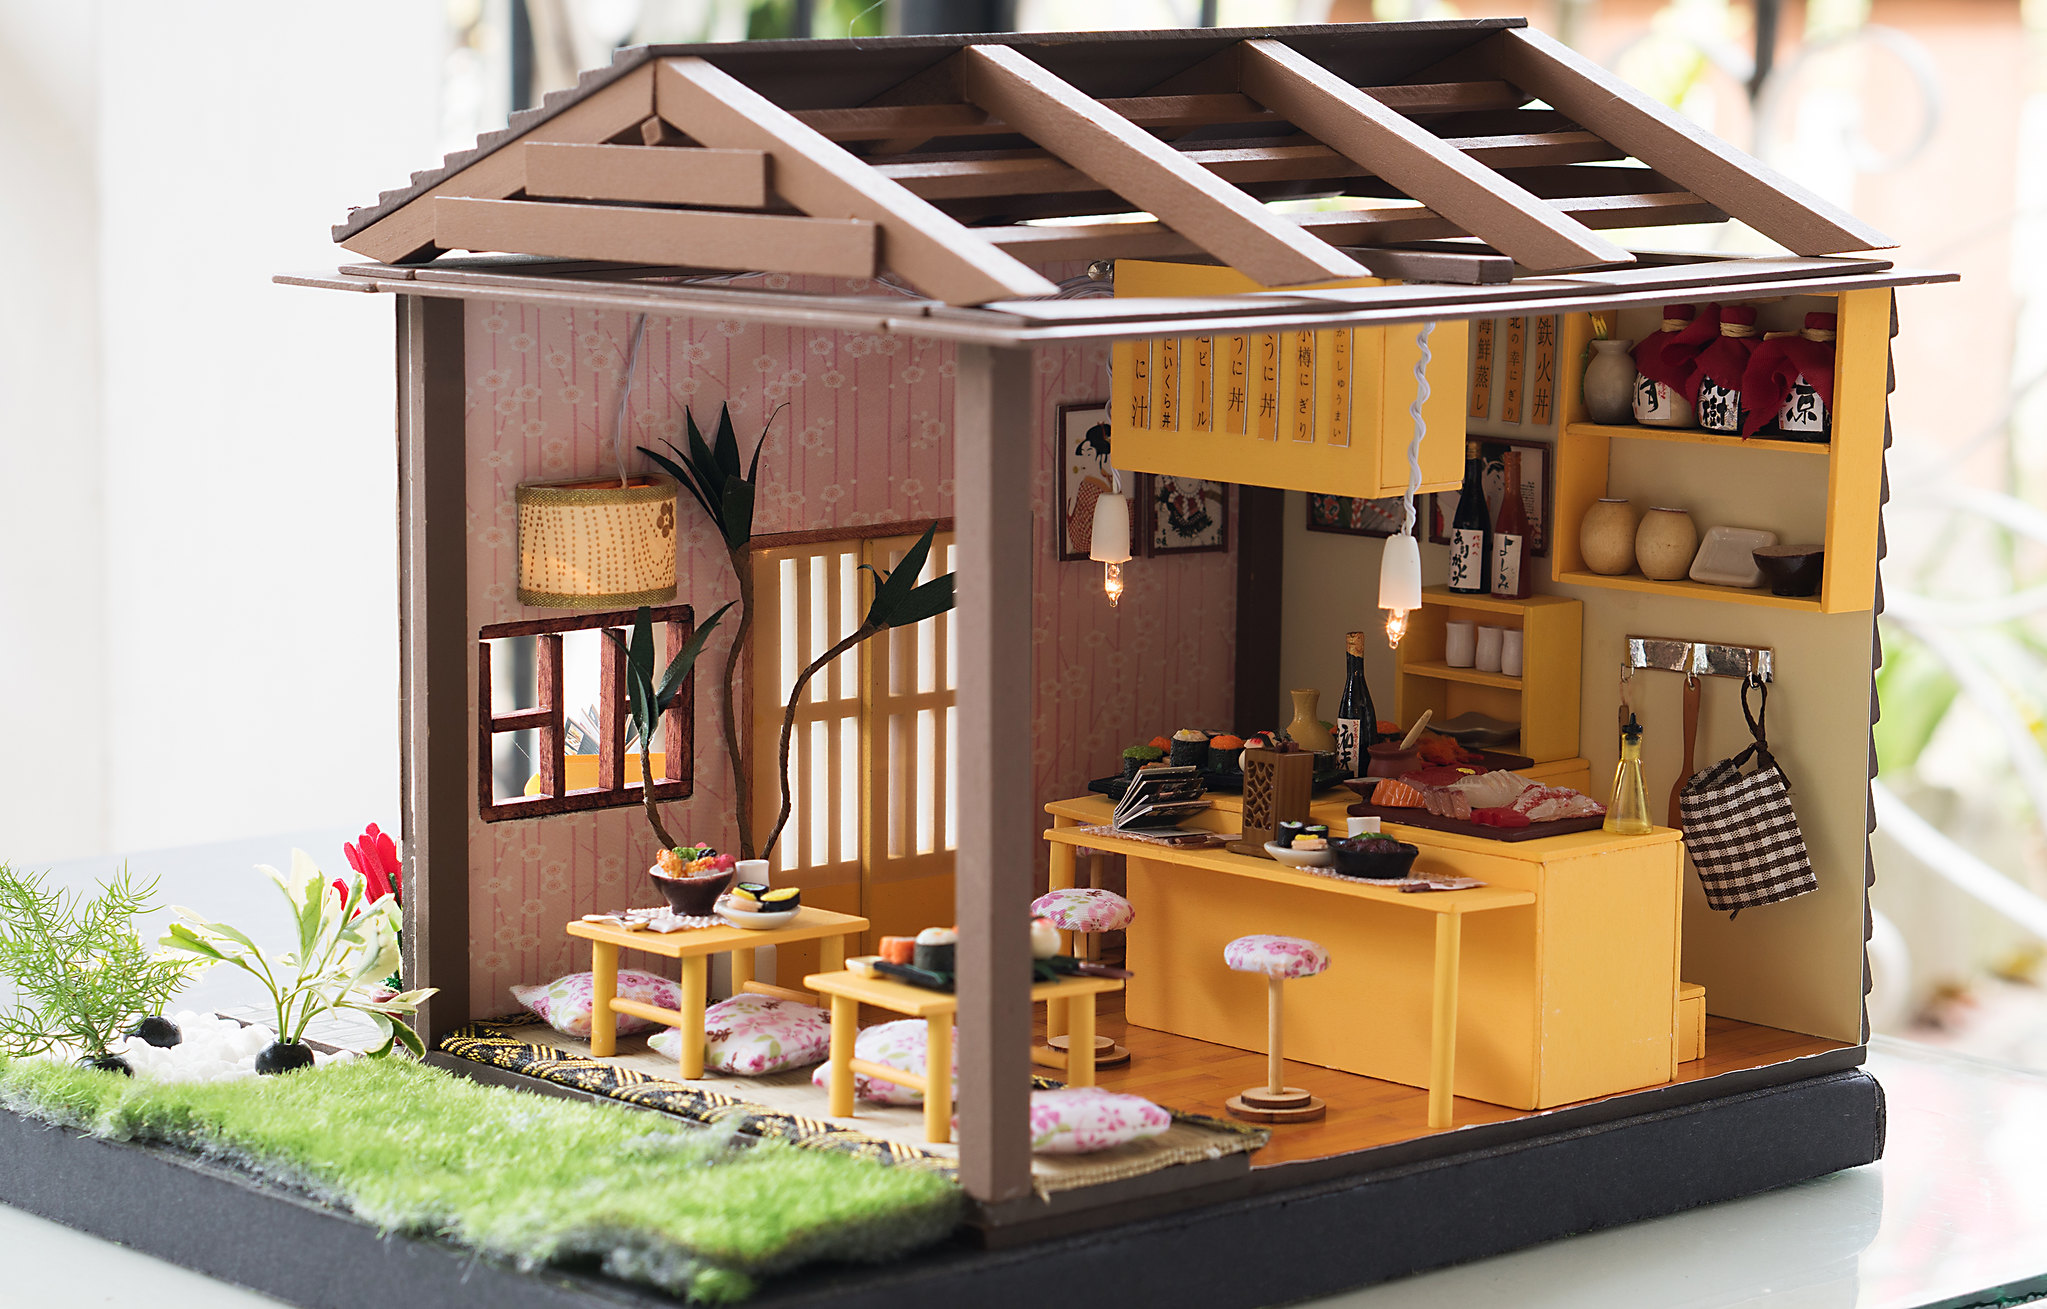 Diy Miniature Dollhouse Kit Sushi Bar Restaurant Kixkillradio